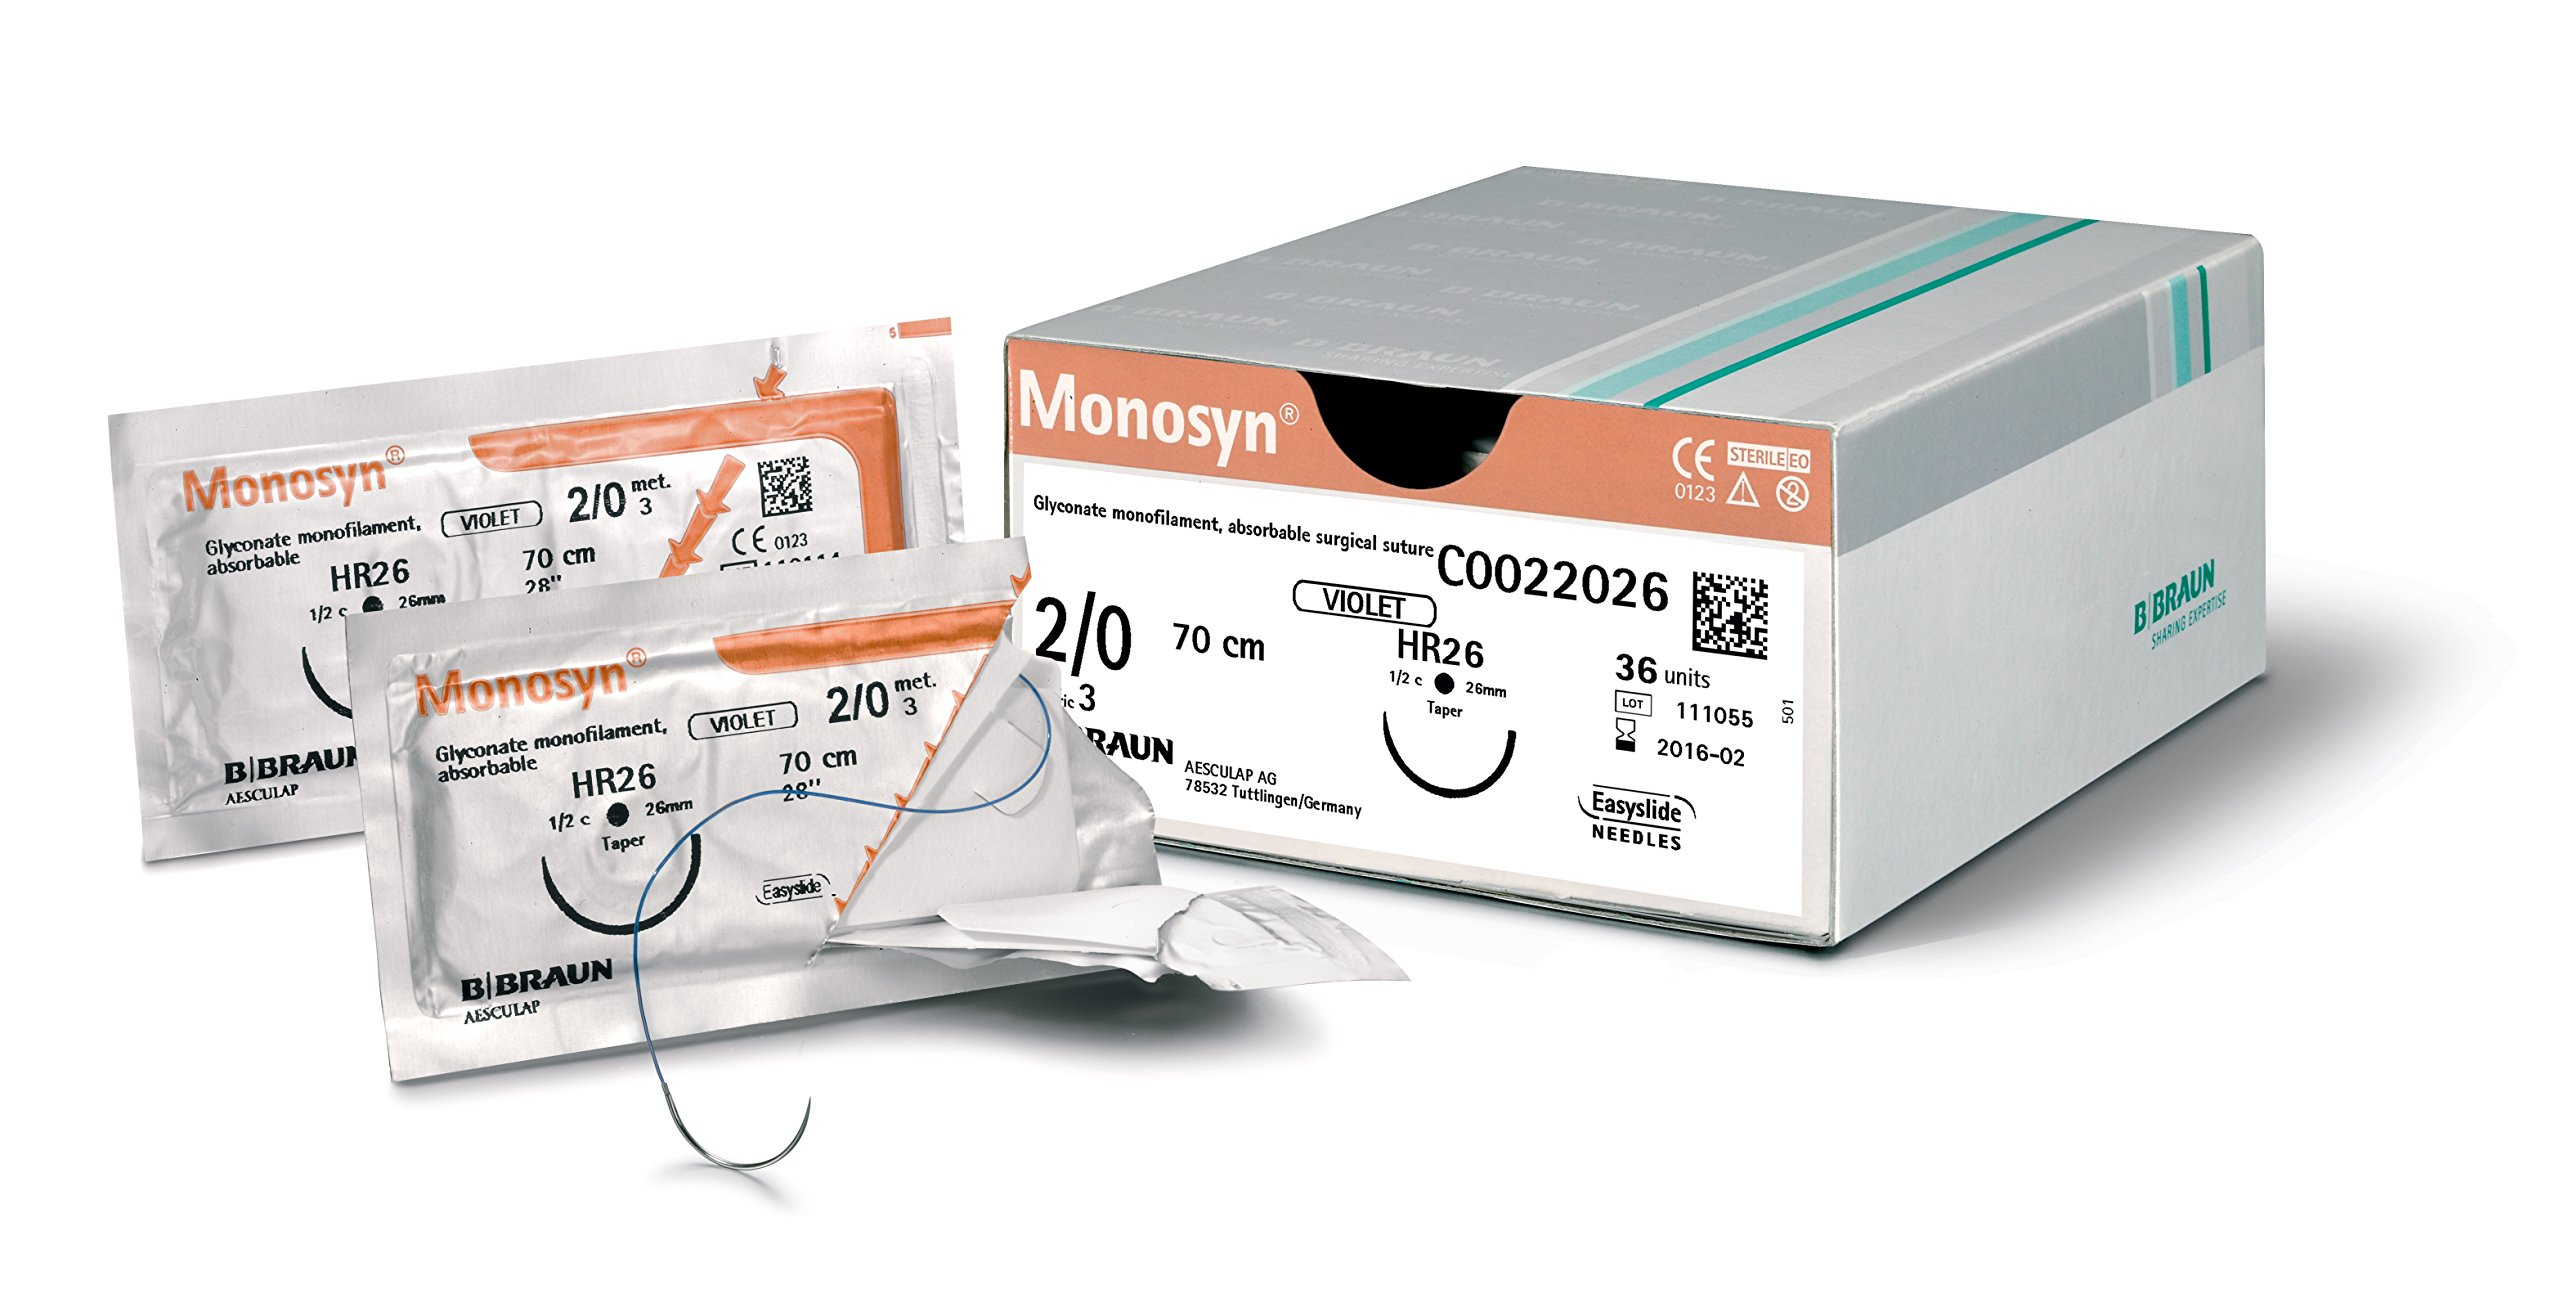 MONOSYN G0023603 Aesculap UNDYED 5/0 18'' (45 cm) DSMP13 DDP Suture (Pack of 12)